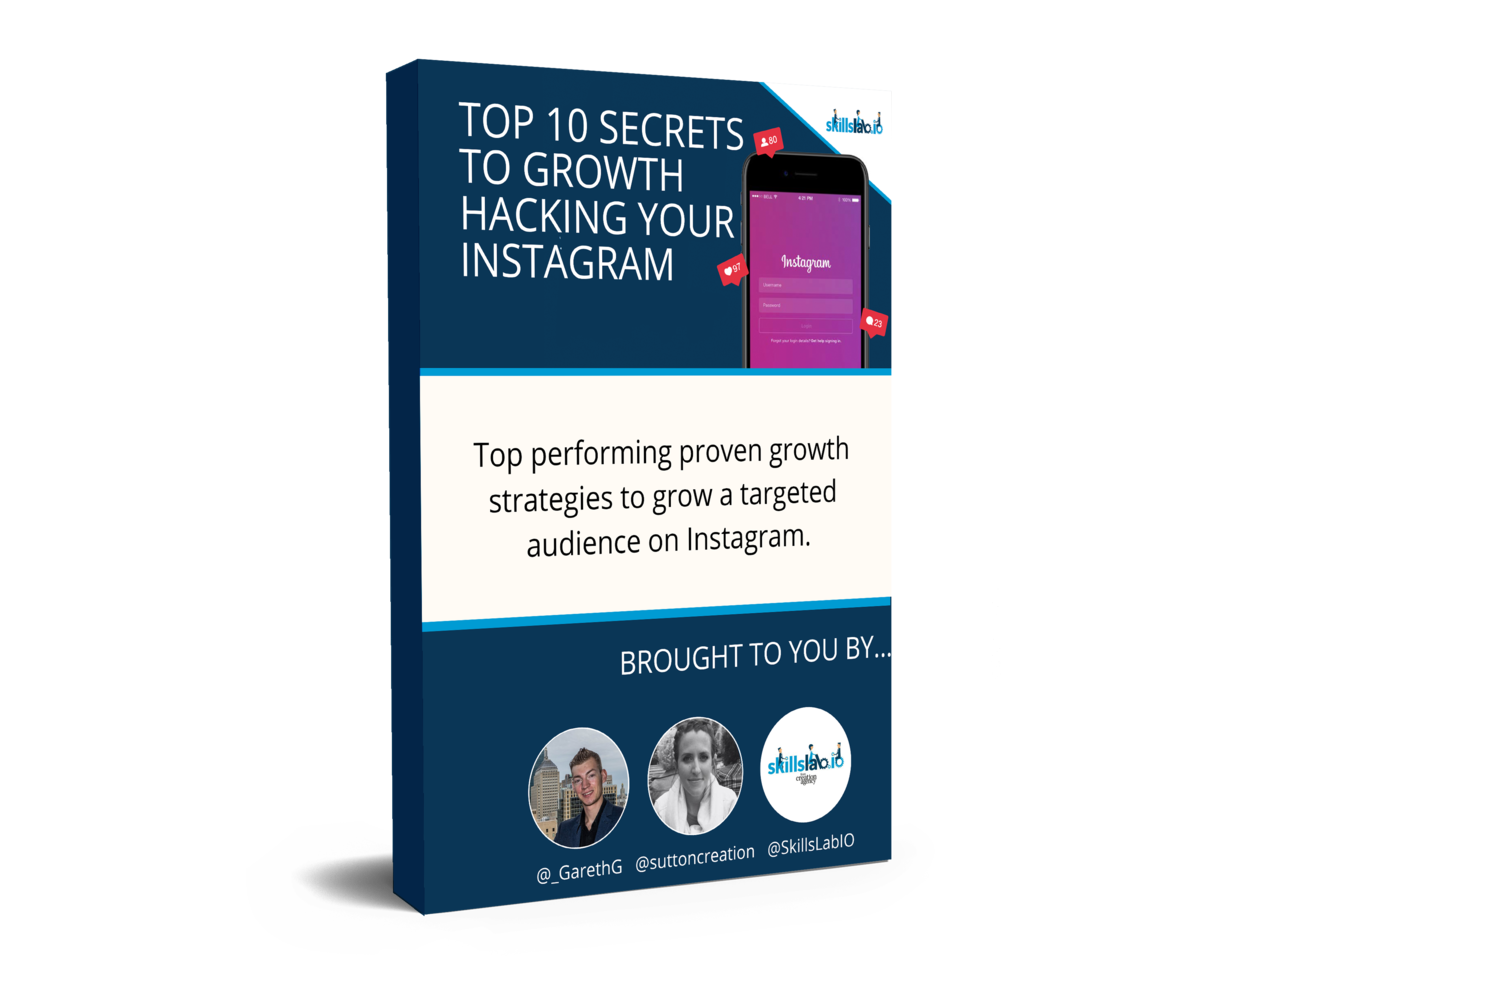 10 Secrets to Growth Hacking Your Instagram in 2018